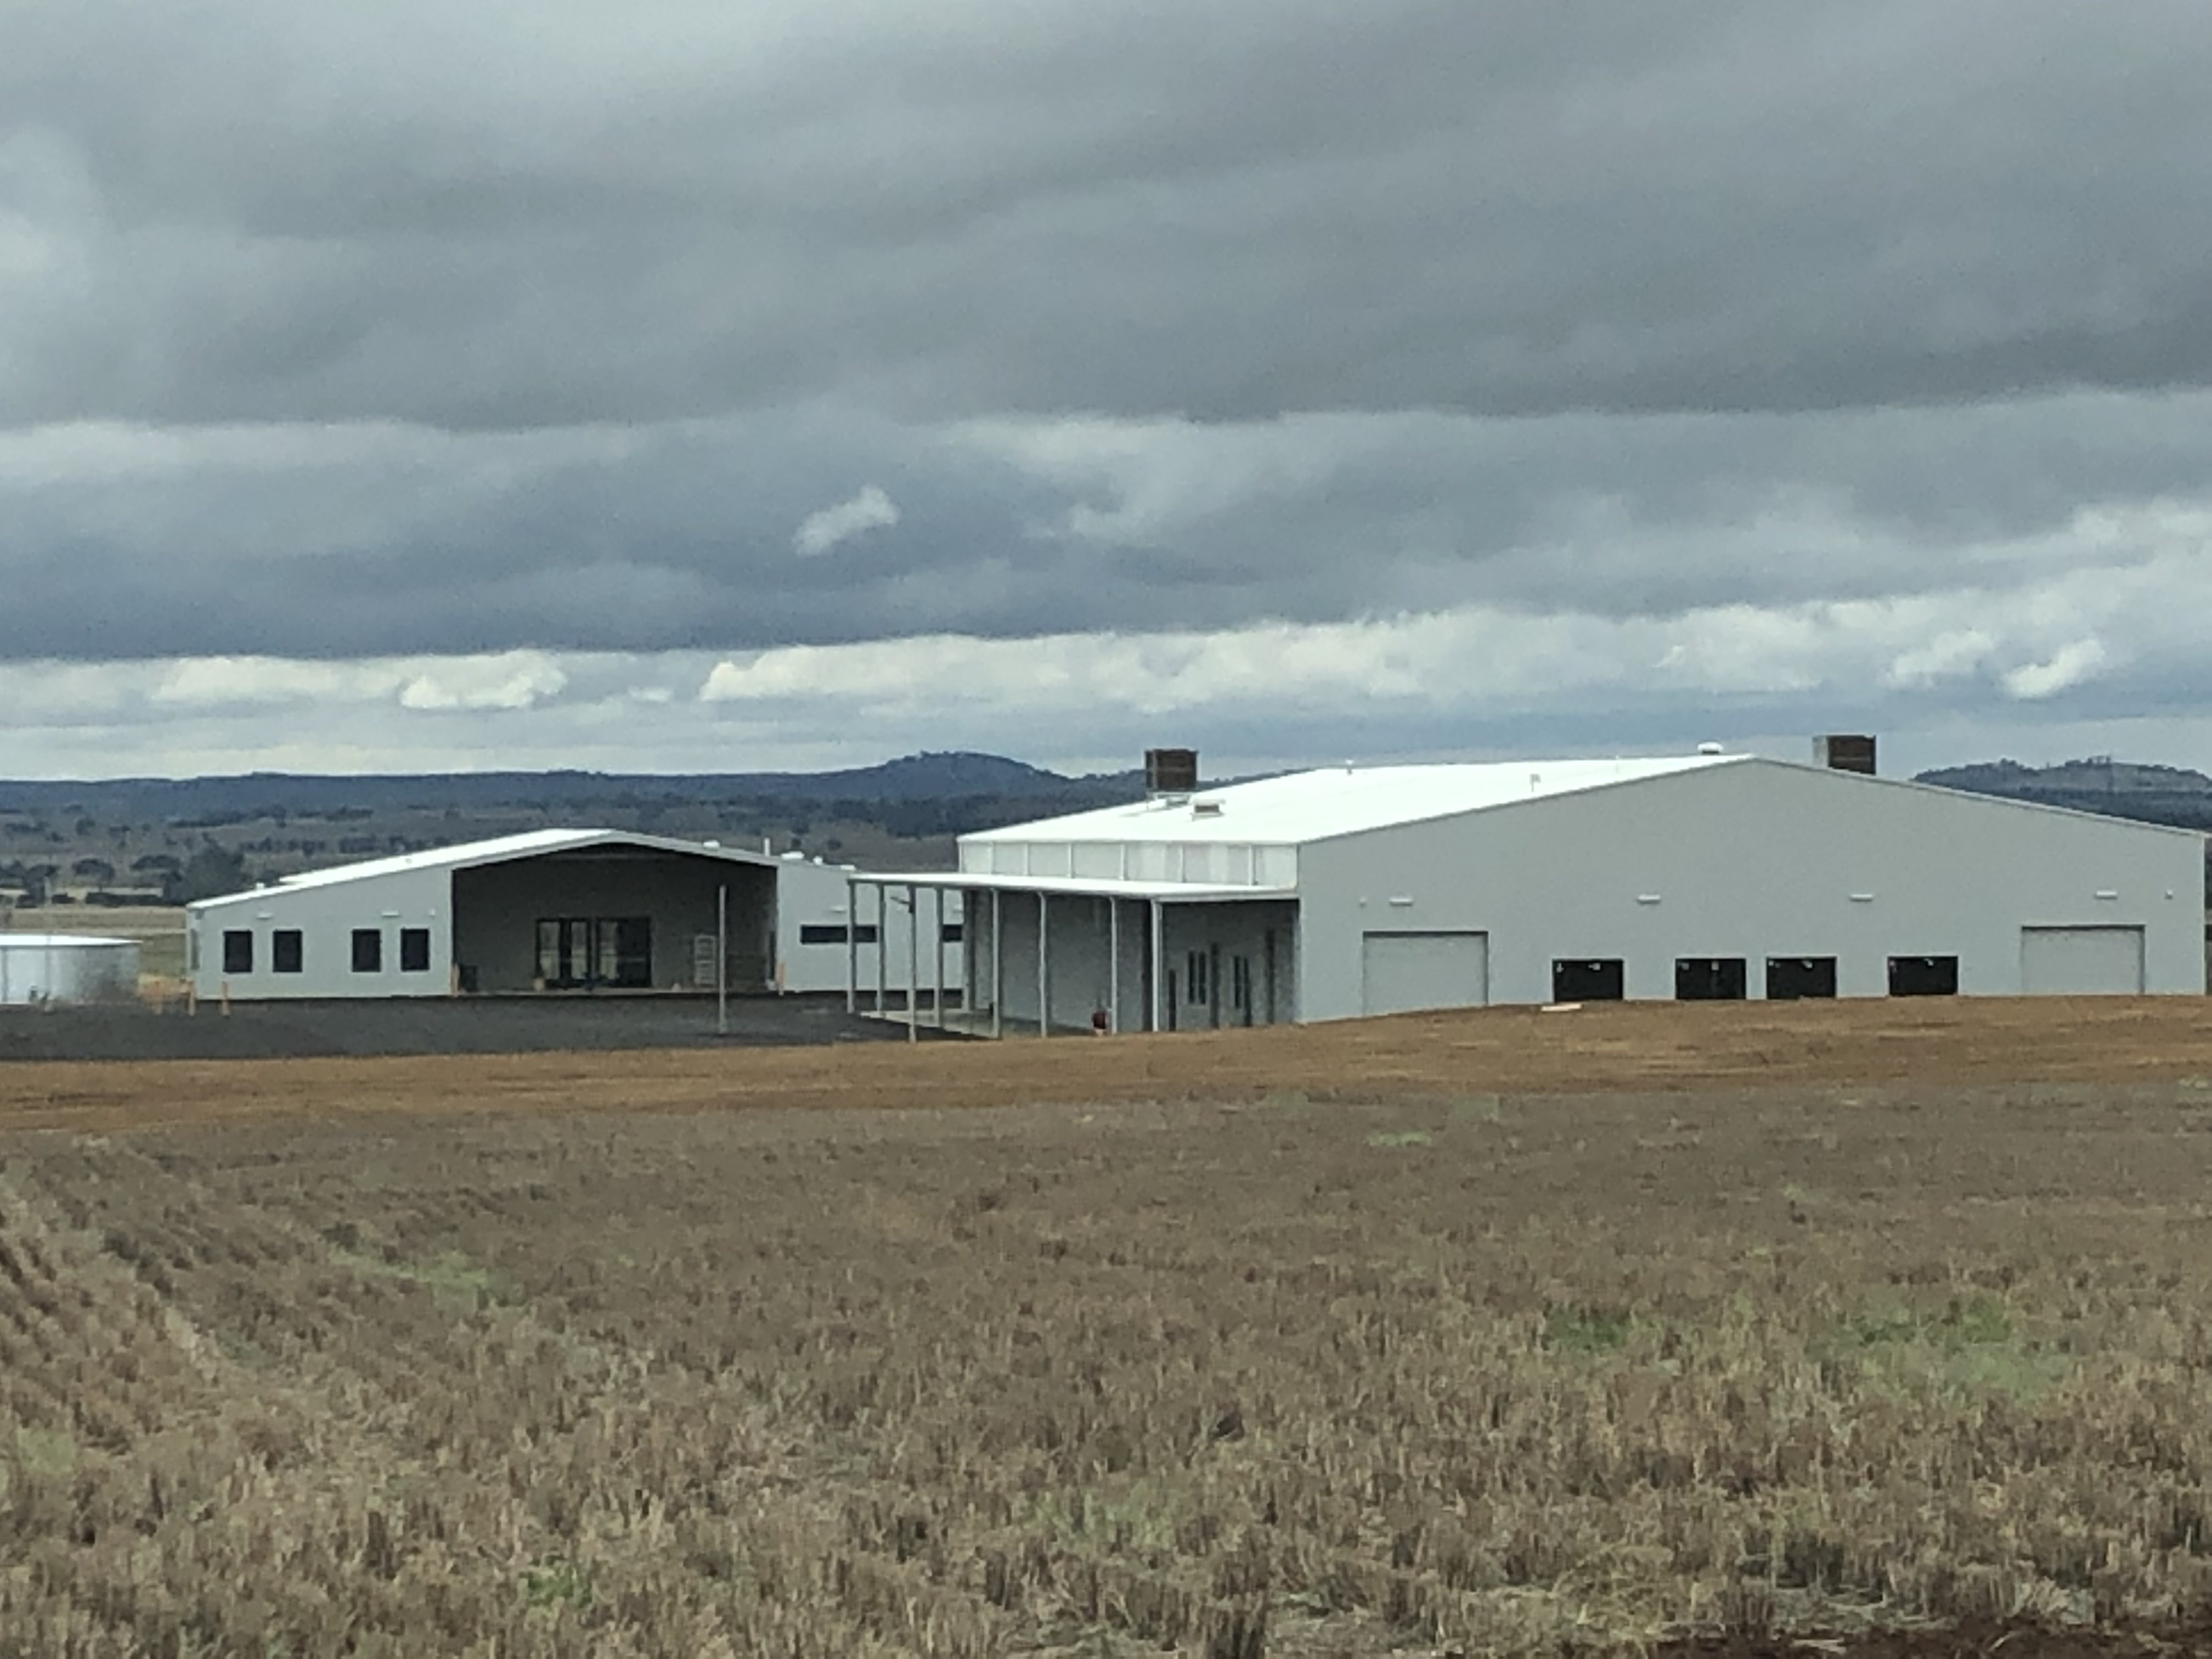 Two large new sheds with a field in the foreground